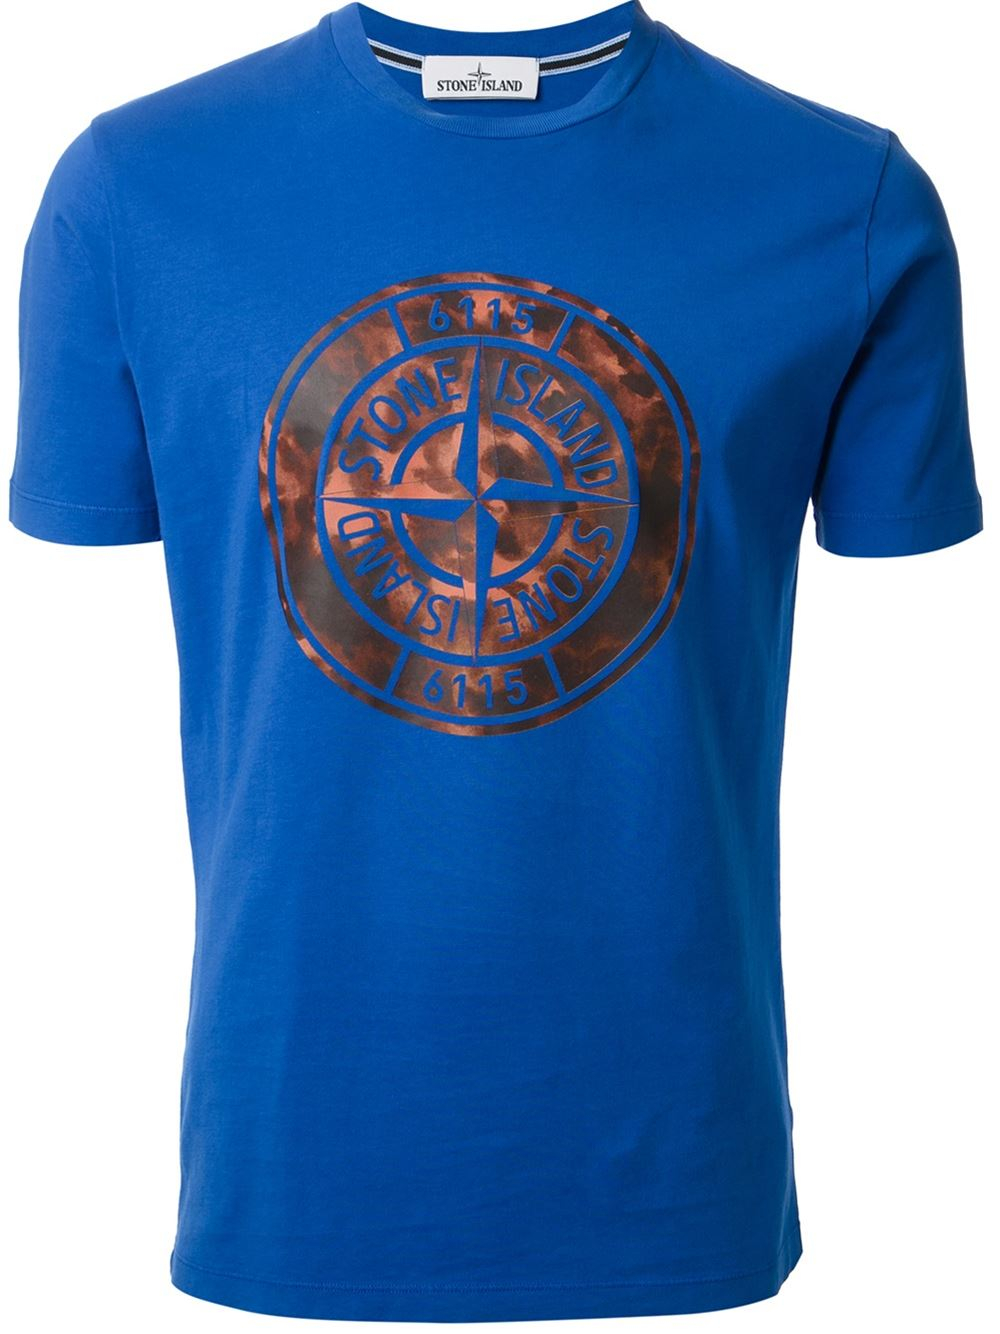 stone island logo t shirt in blue for men lyst. Black Bedroom Furniture Sets. Home Design Ideas